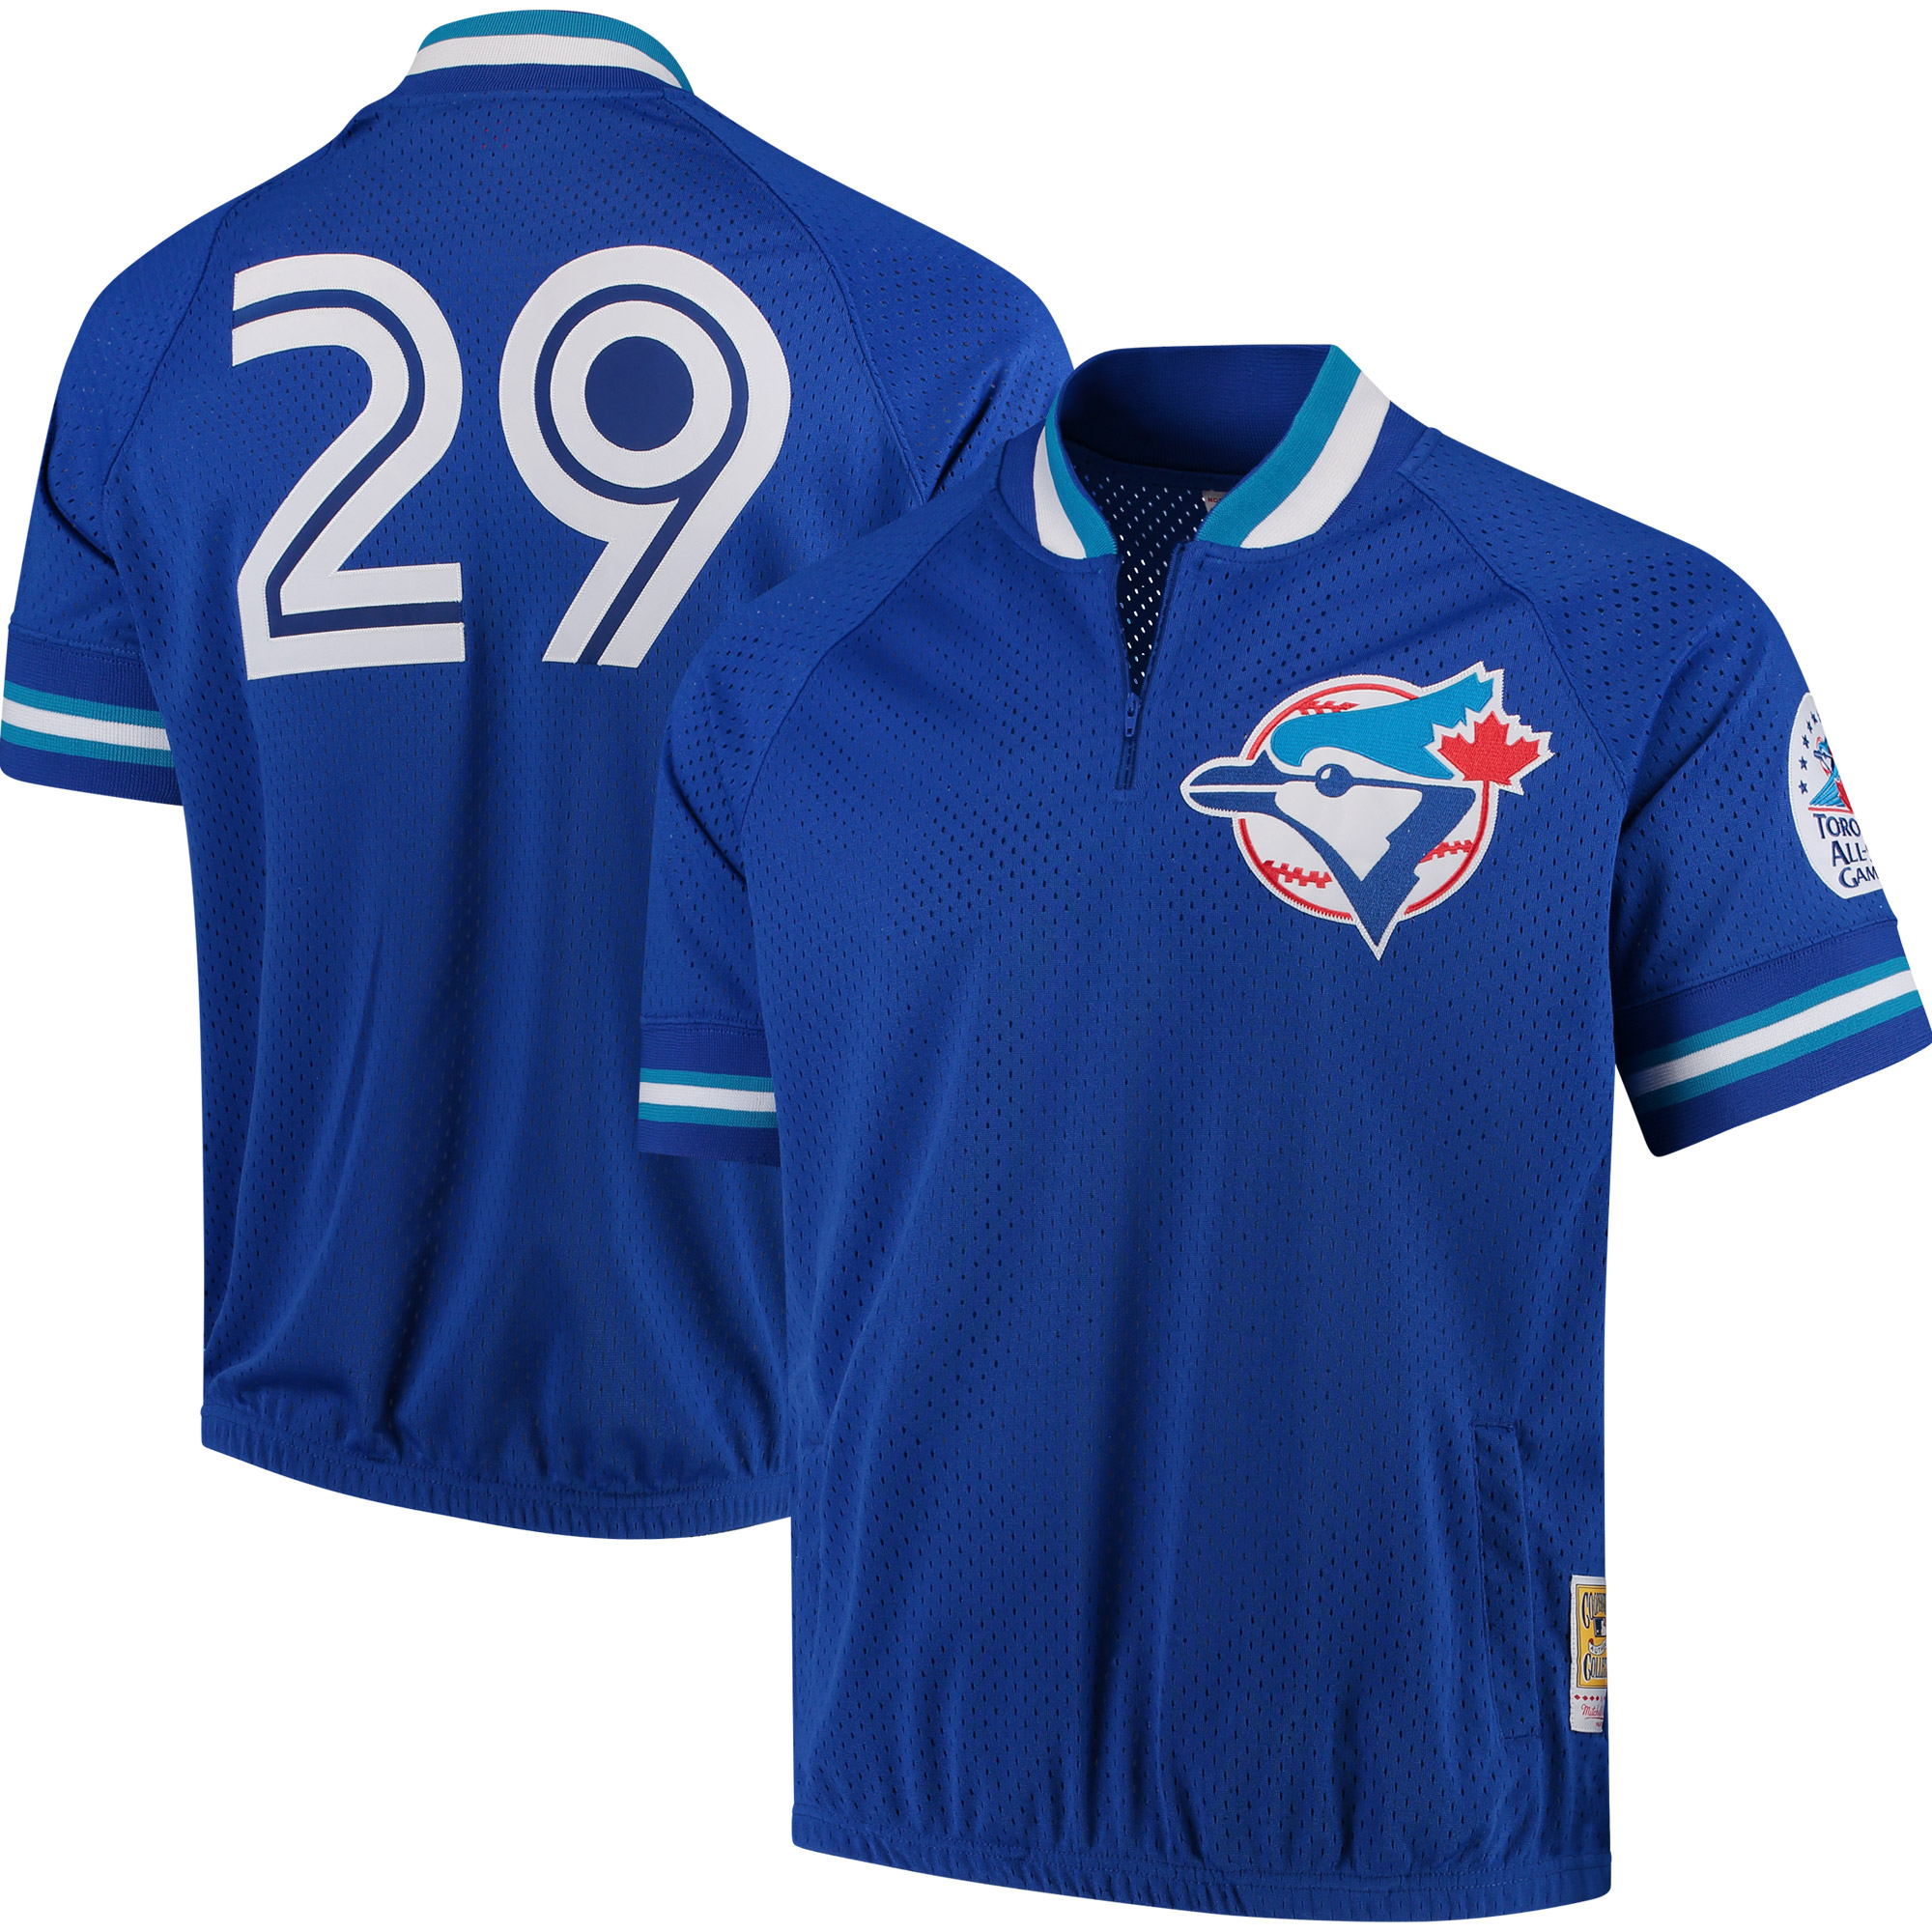 release date: 391e6 c8724 Joe Carter Toronto Blue Jays Mitchell & Ness Cooperstown Collection Mesh  Batting Practice Quarter-Zip Jersey - Royal